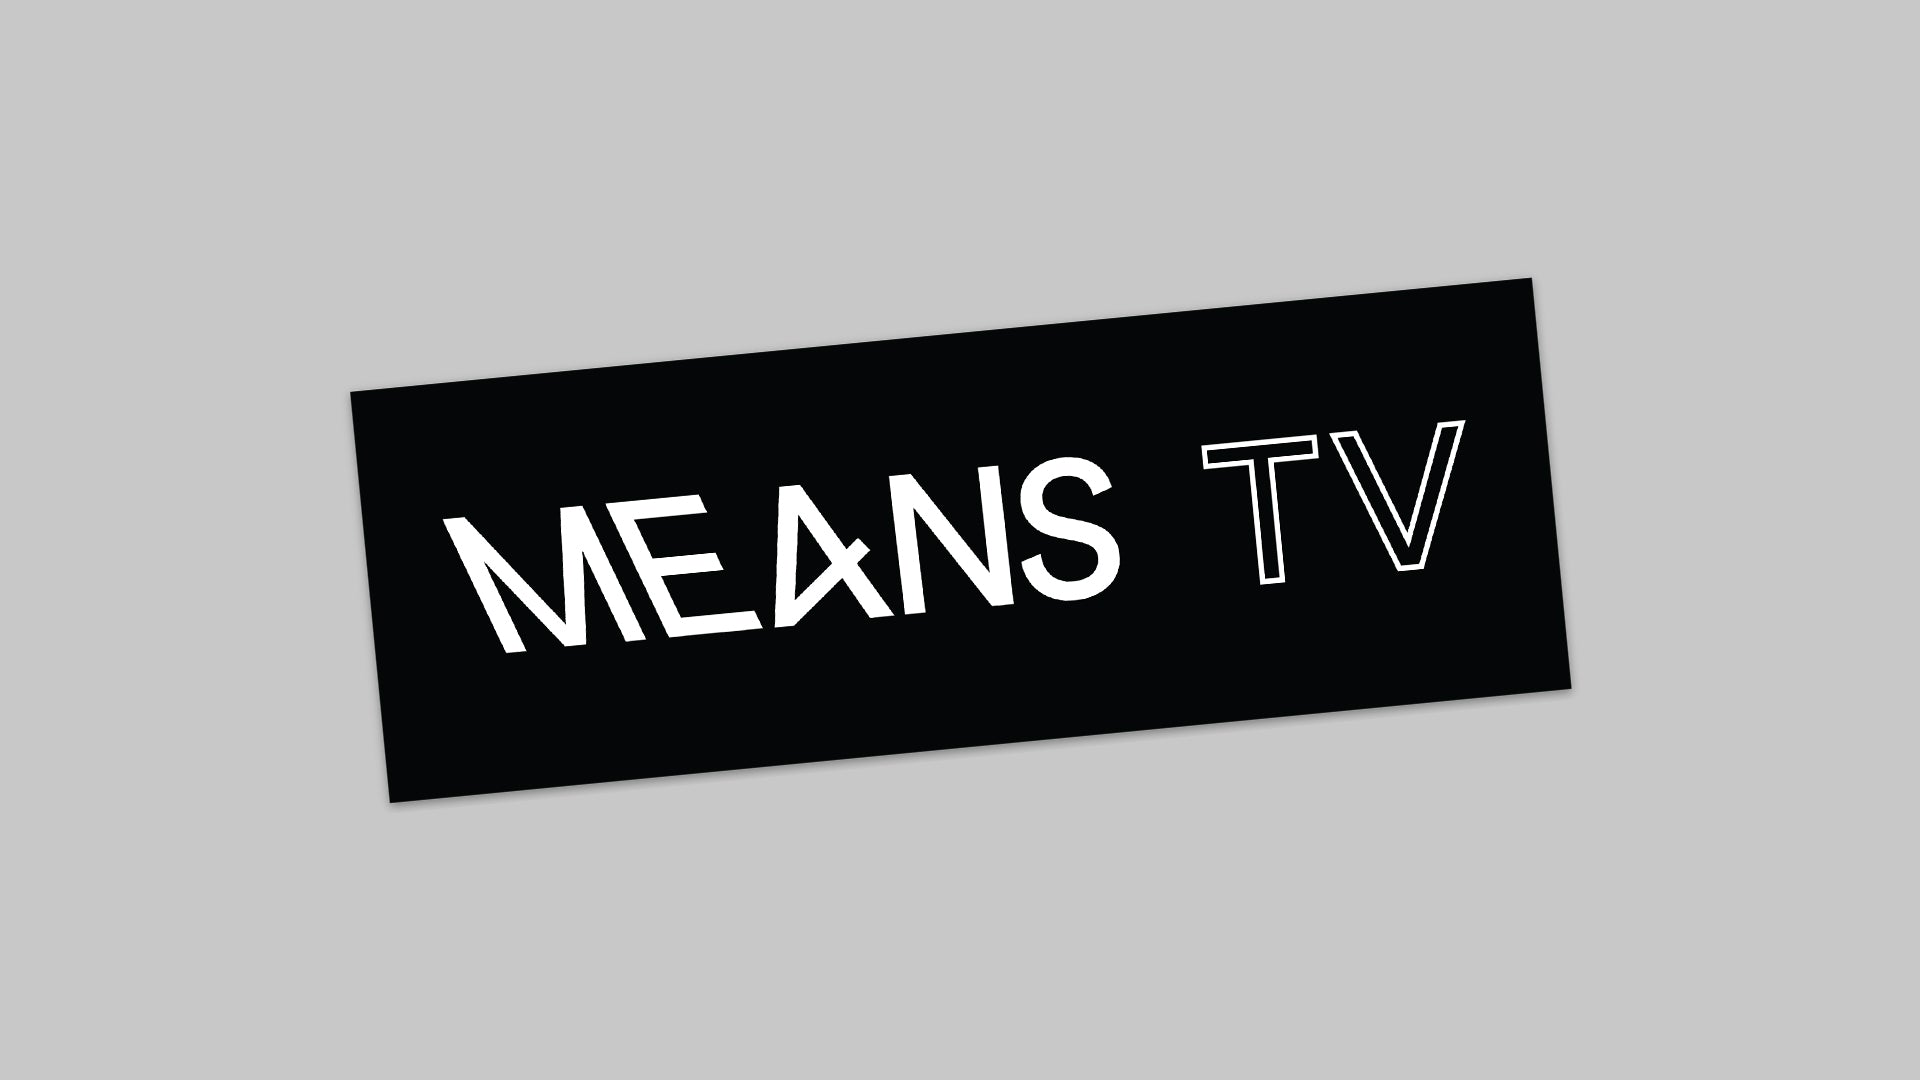 Means TV sticker